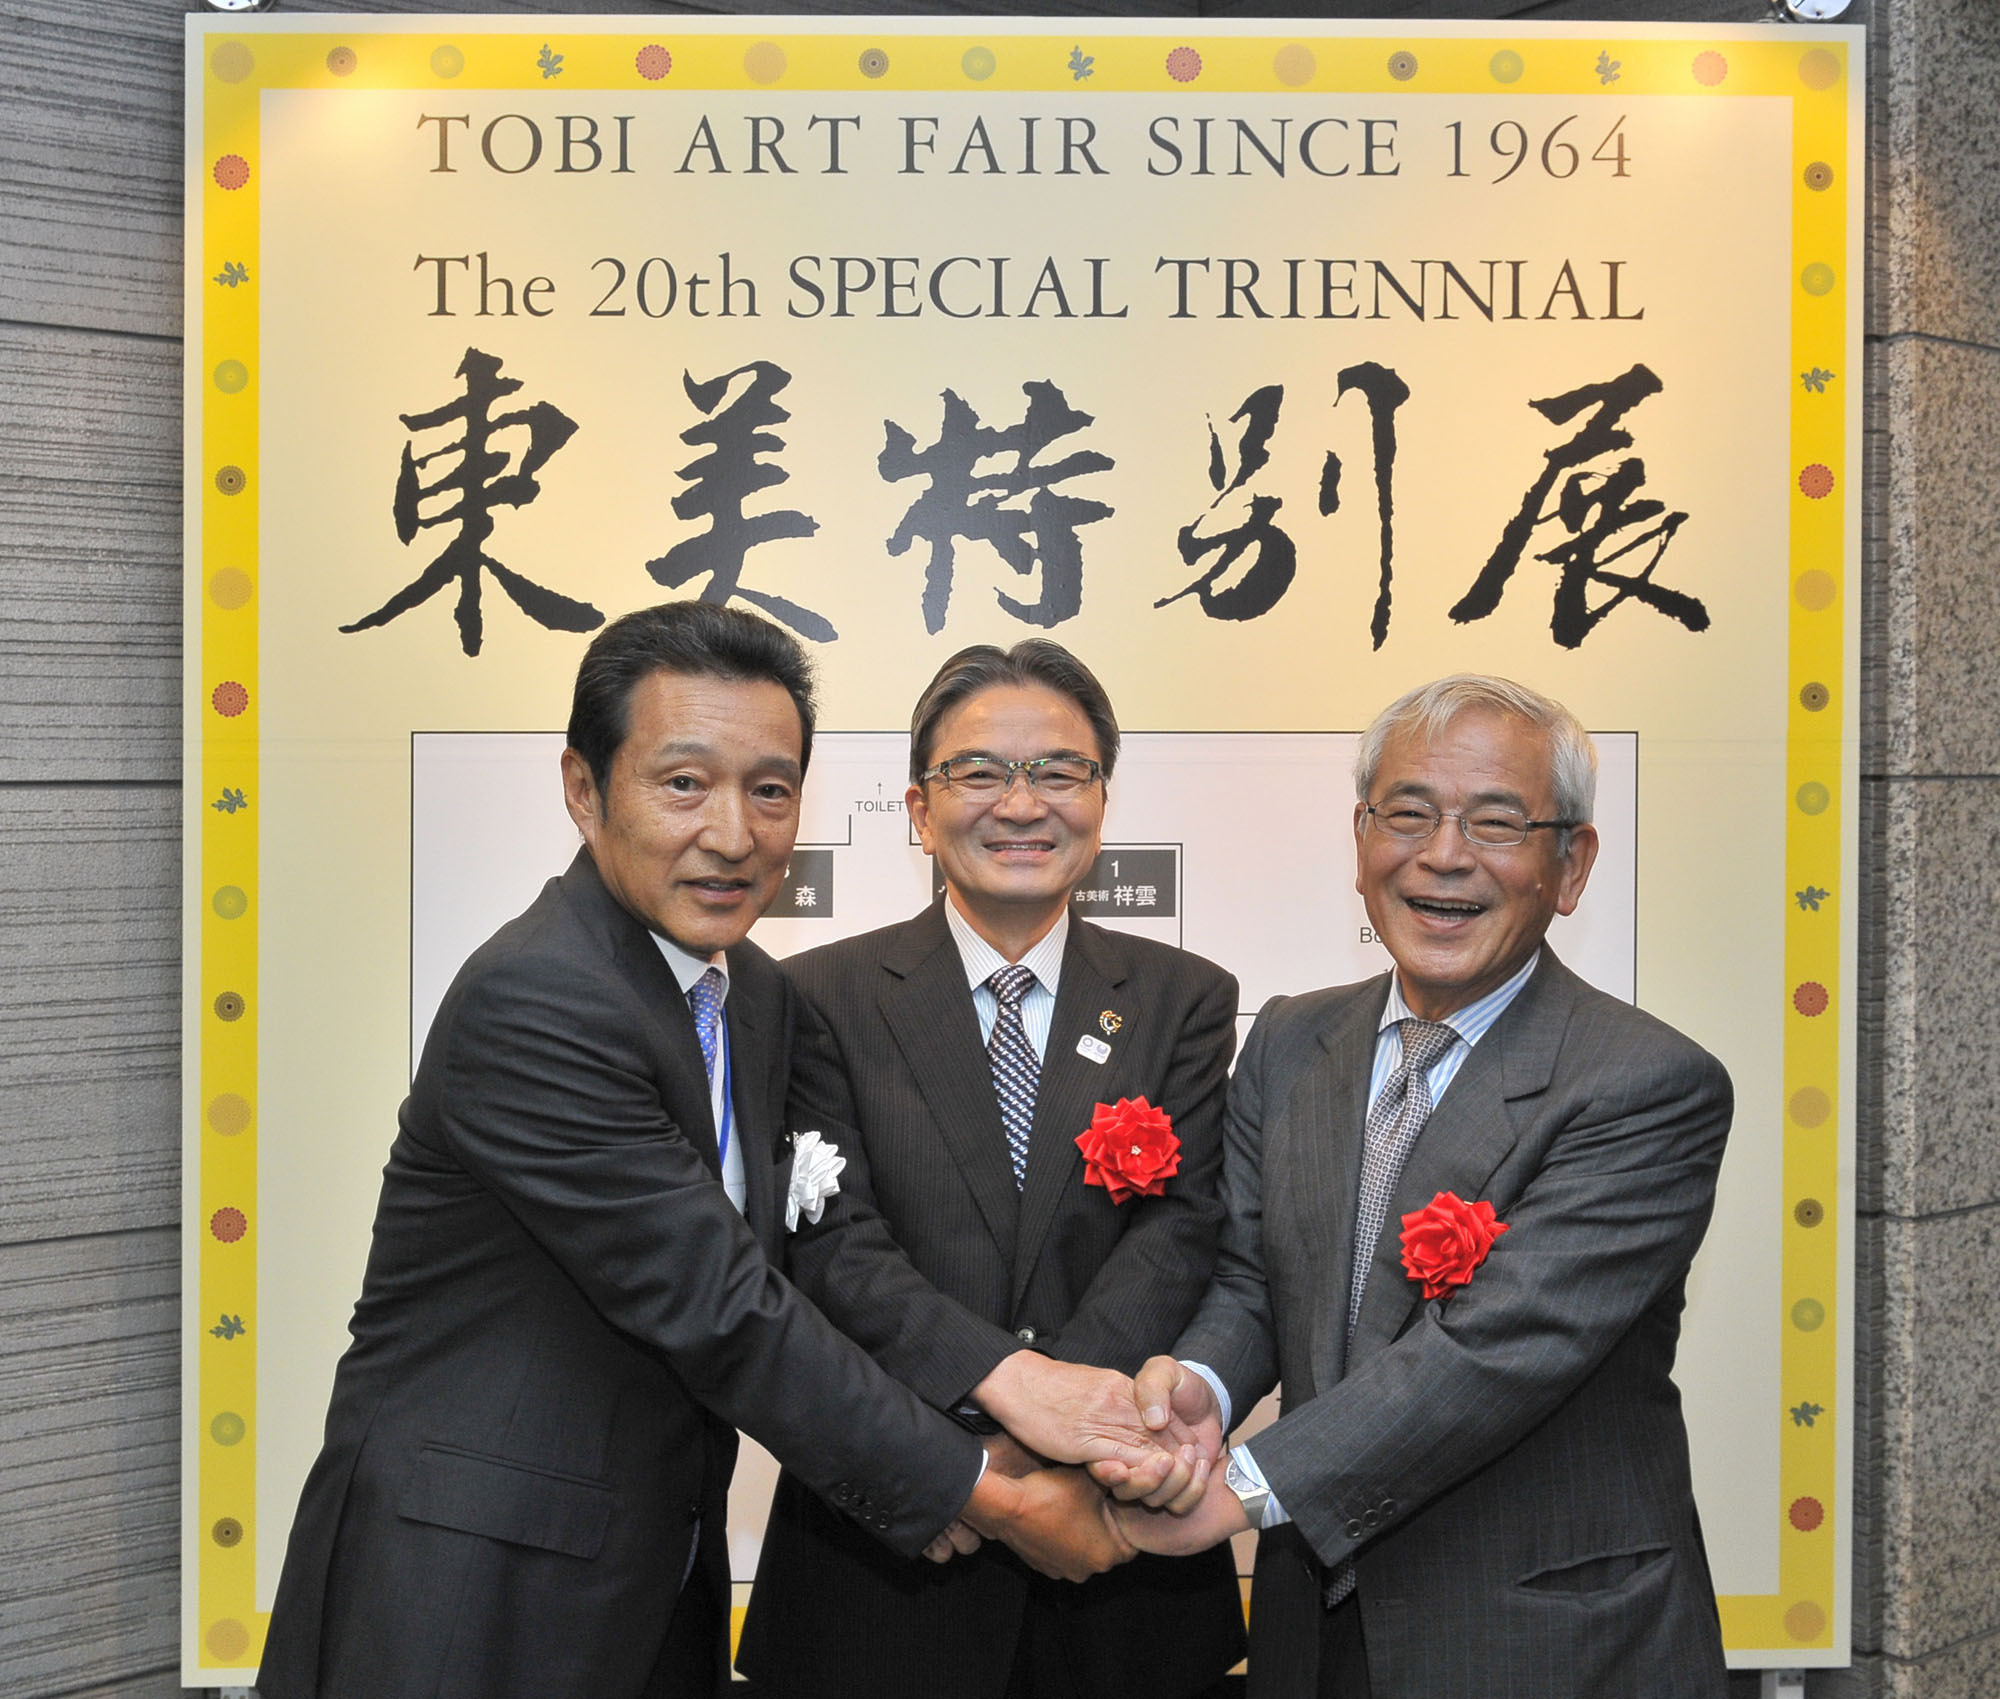 Tokyo Art Dealers' Association Chairman and Tokyo Art Club Co. Ltd. Vice President Jun Nakamura (left) welcomes Commissioner for Cultural Affairs Ryohei Miyata (center) and former Commissioner for Cultural Affairs Masanori Aoyagi to the opening reception of the 20th TOBI Art Fair Special Triennial at the Tokyo Art Club in Tokyo's Minato Ward on Oct. 13. | YOSHIAKI MIURA